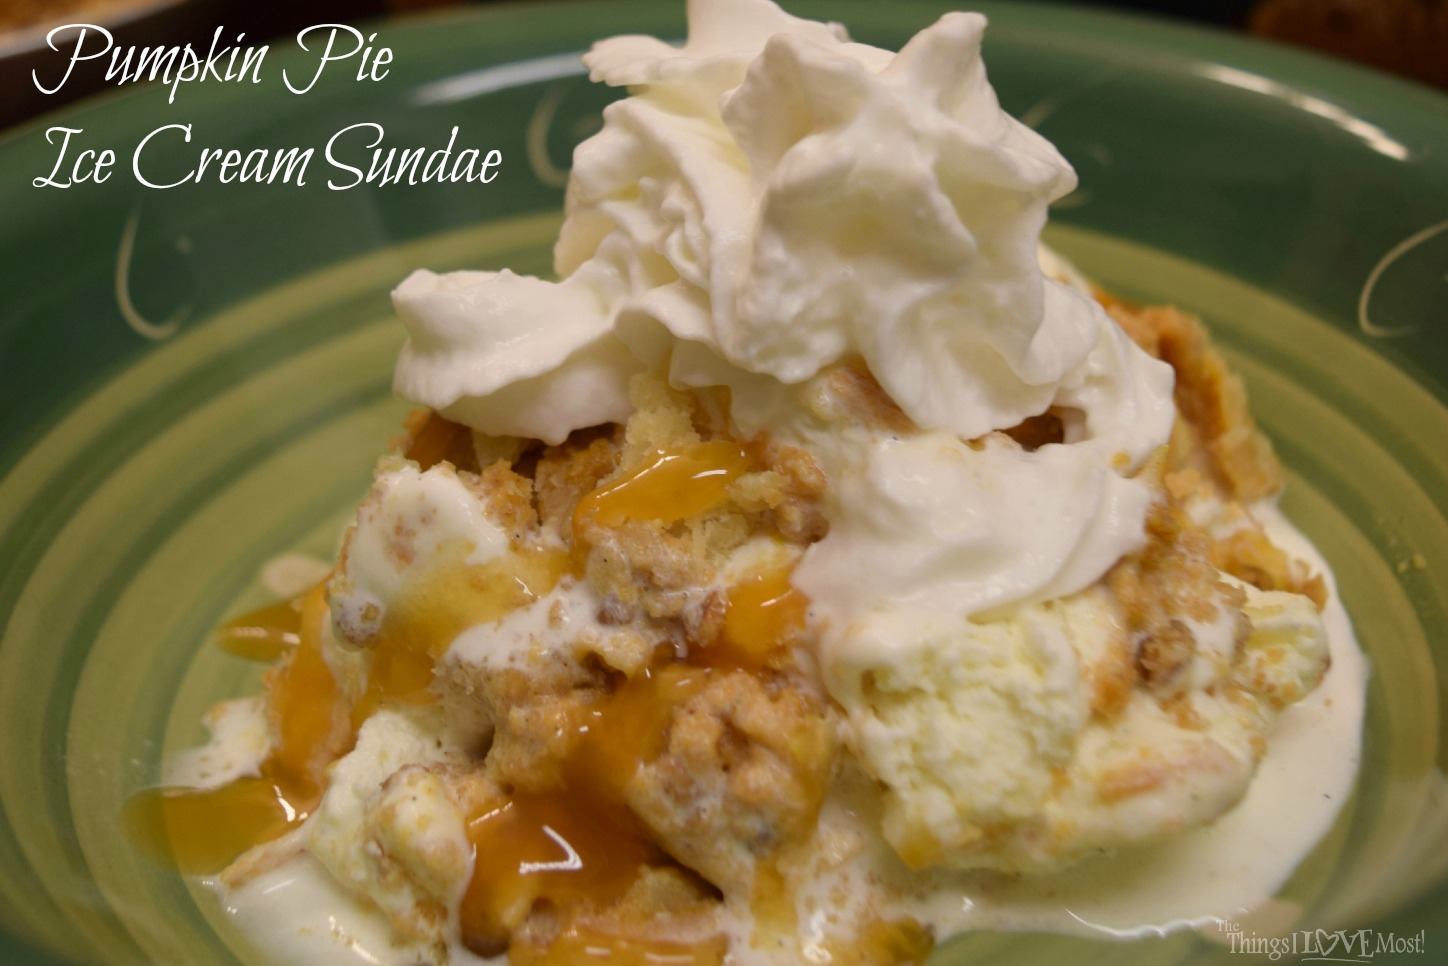 sundae ice cream sundae pie 2 allyou com ice cream sundae yogurt pies ...